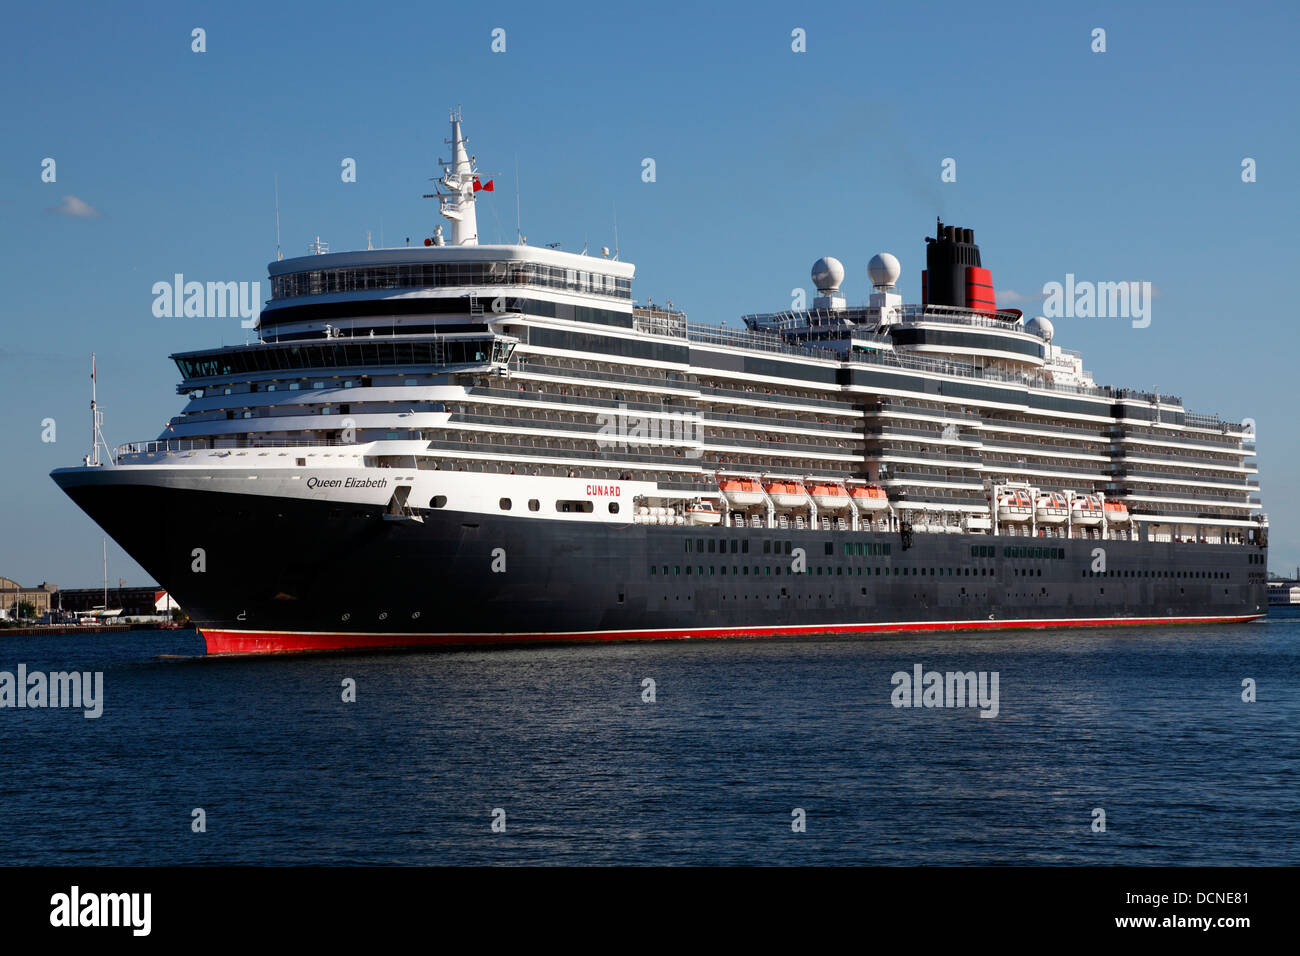 The new MS Queen Elizabeth cruise ship